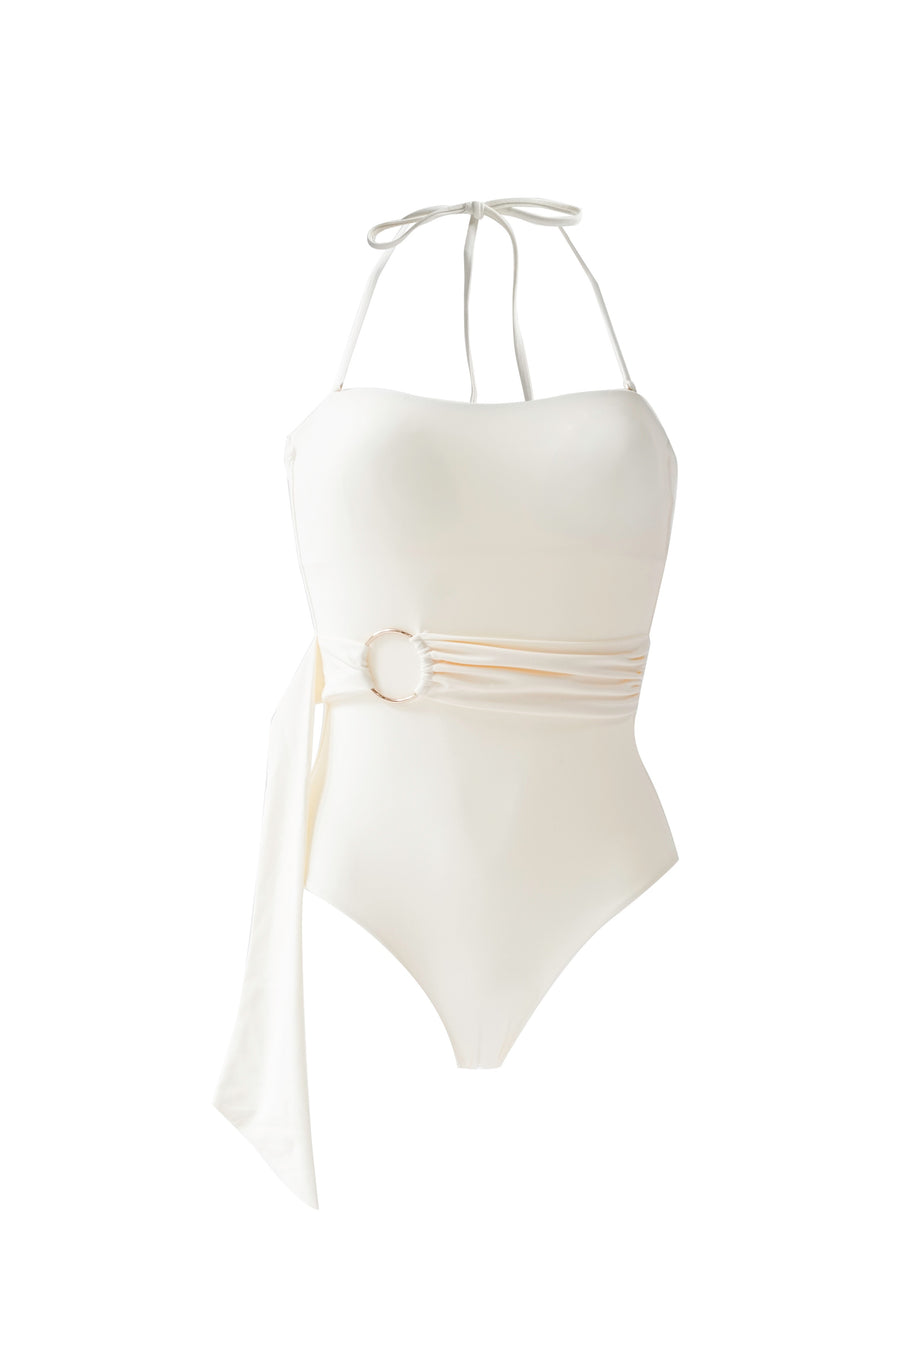 Belted Maillot - Cream